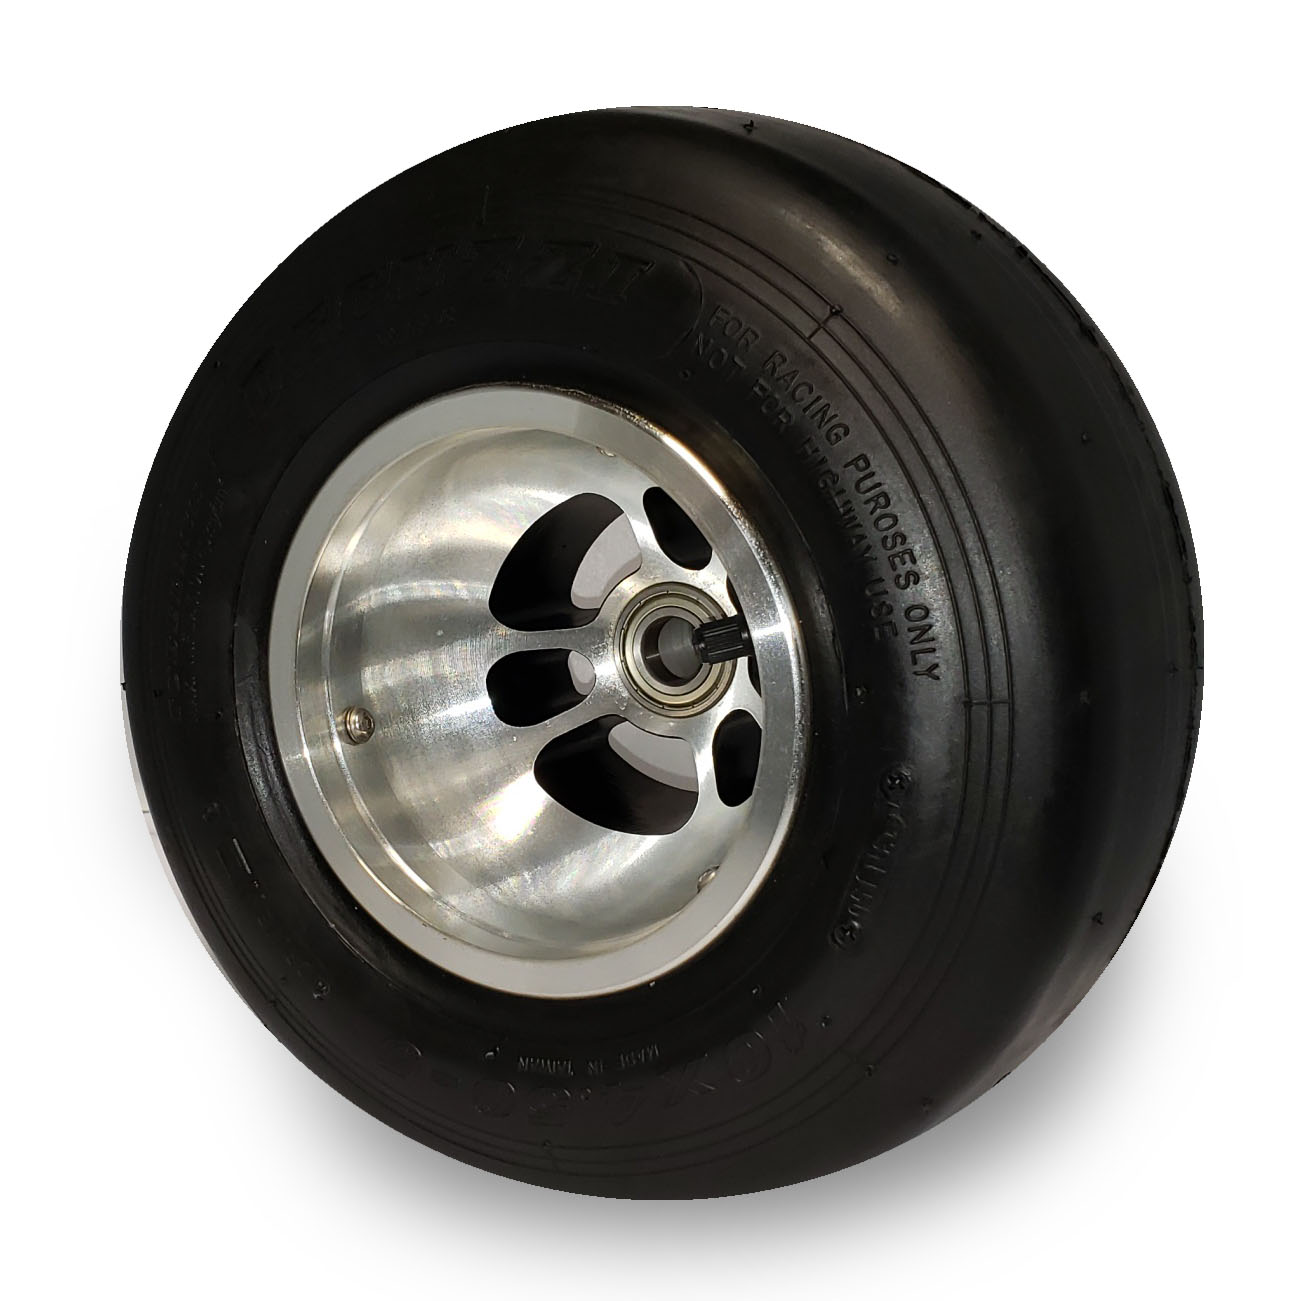 Decuzzi tires Front Tire.jpg